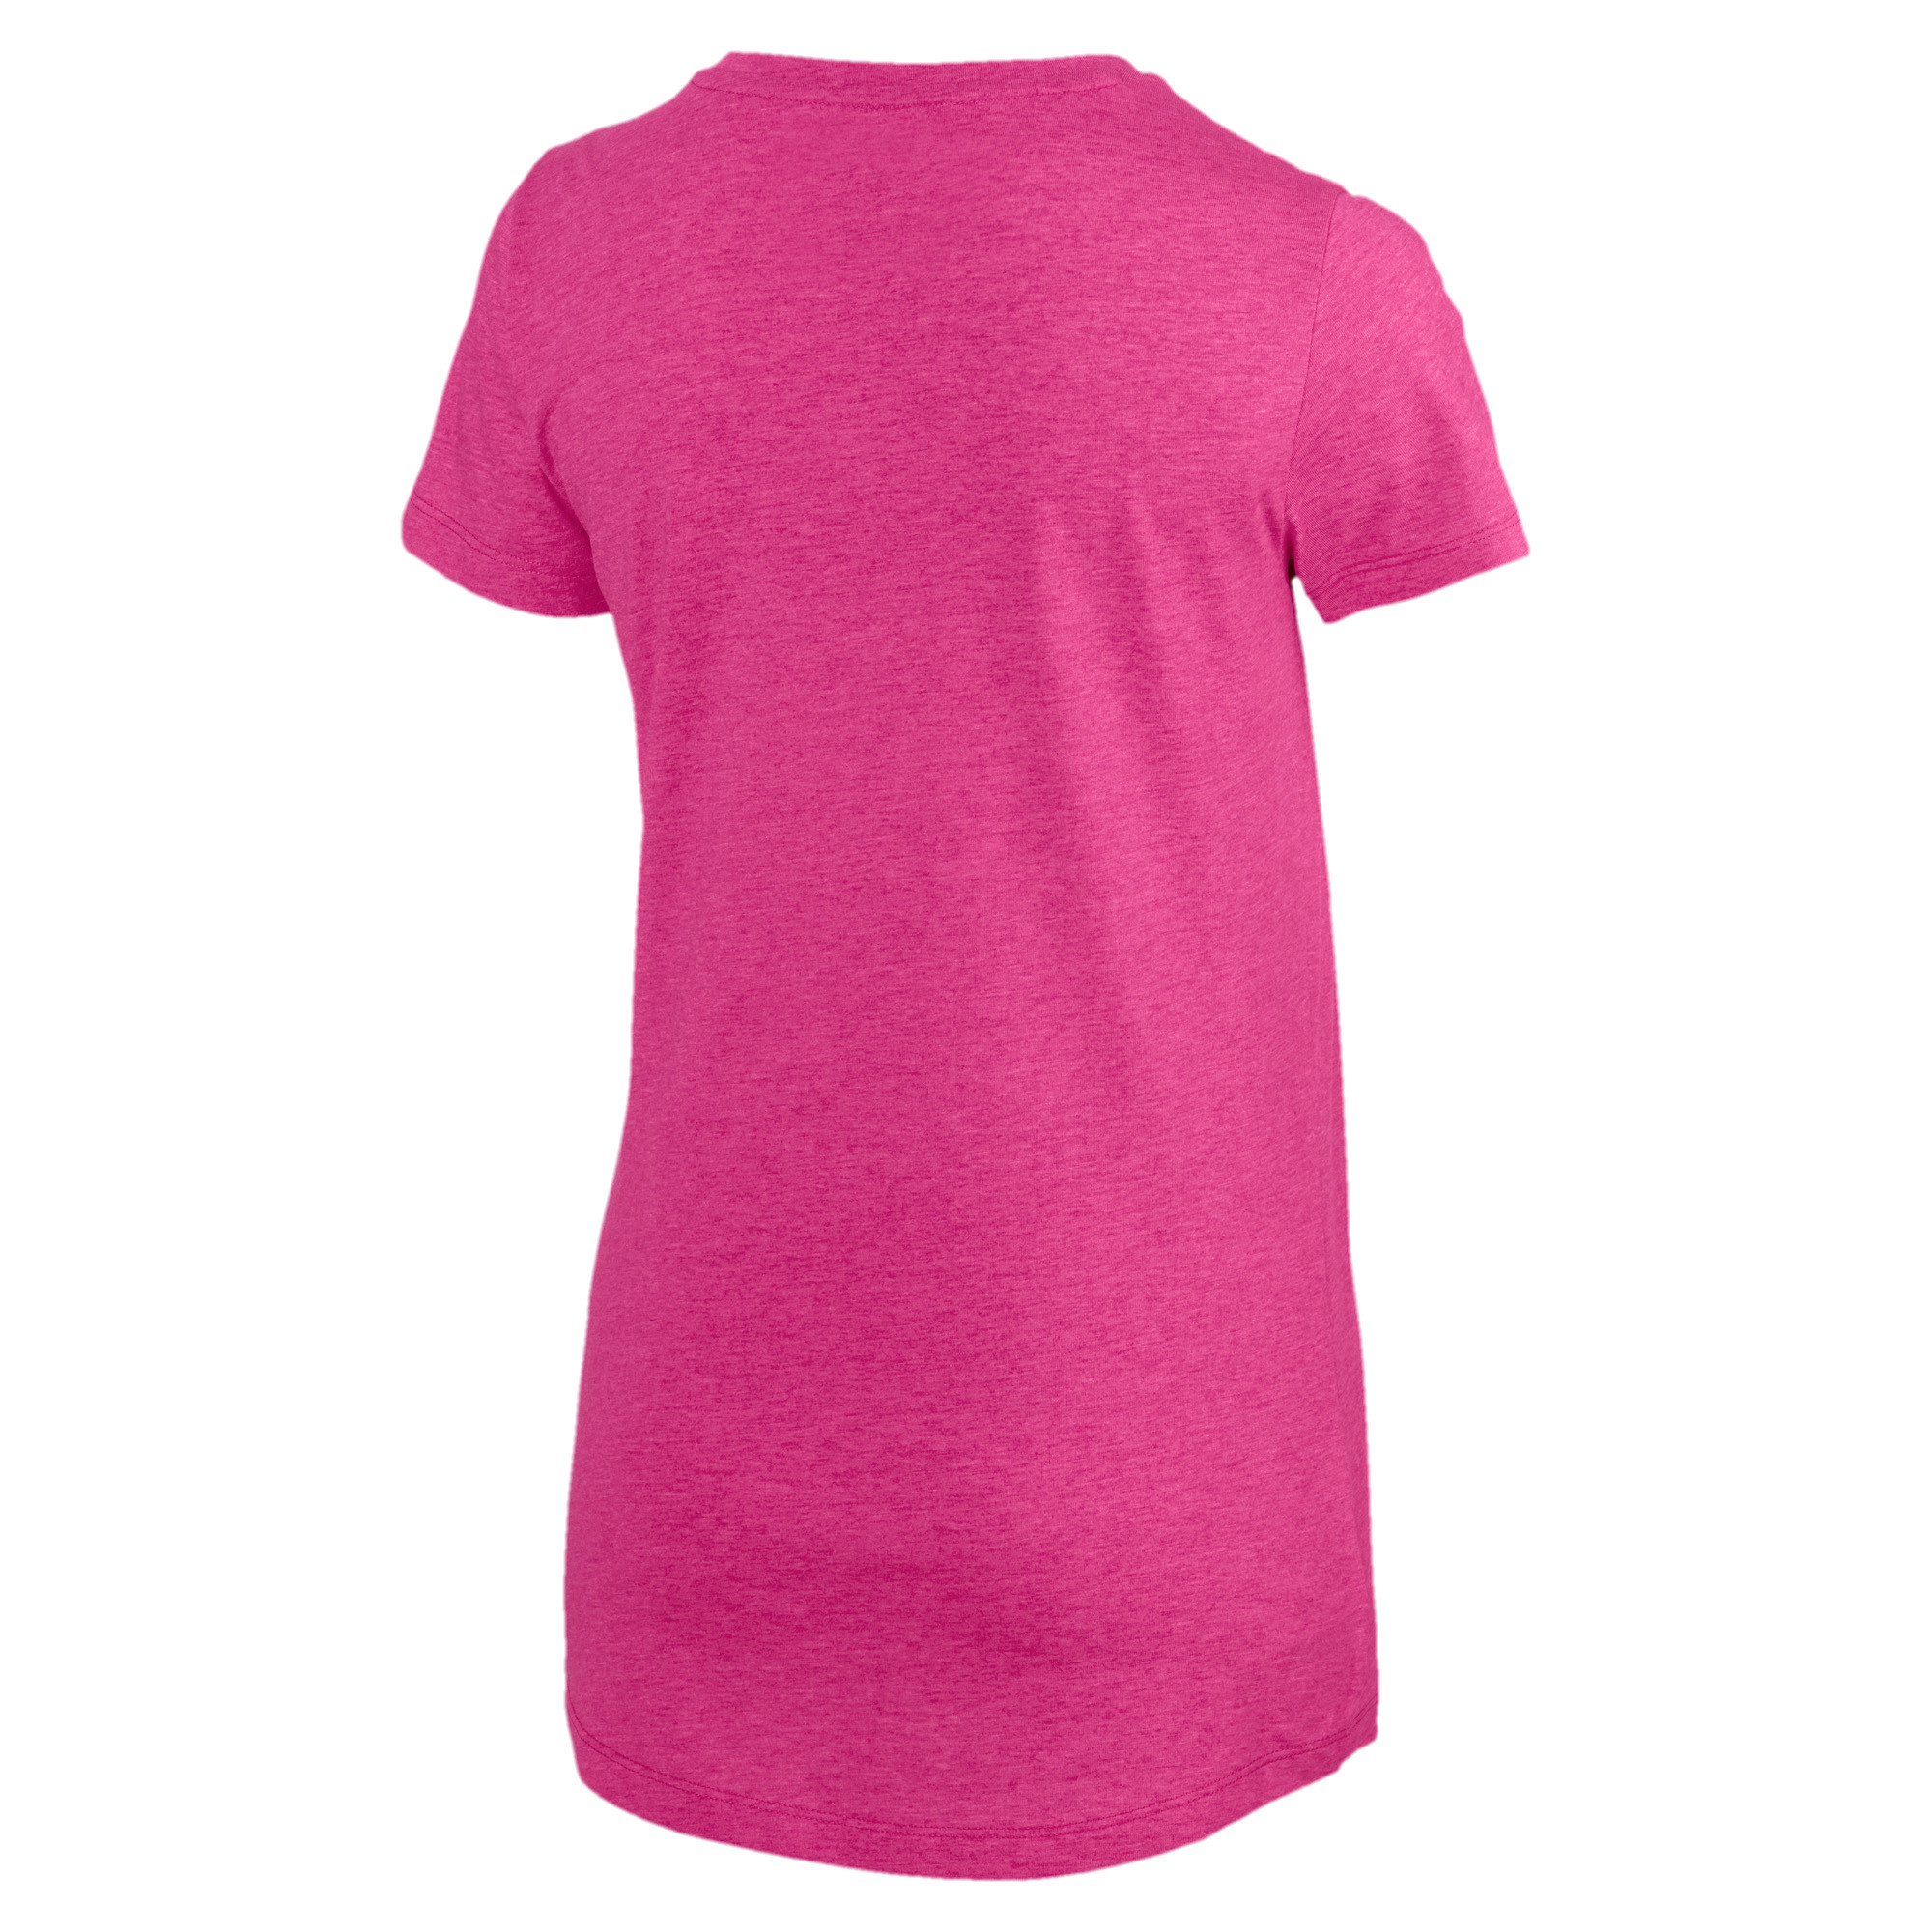 PUMA-Essentials-Women-039-s-Heather-Tee-Women-Tee-Basics thumbnail 13